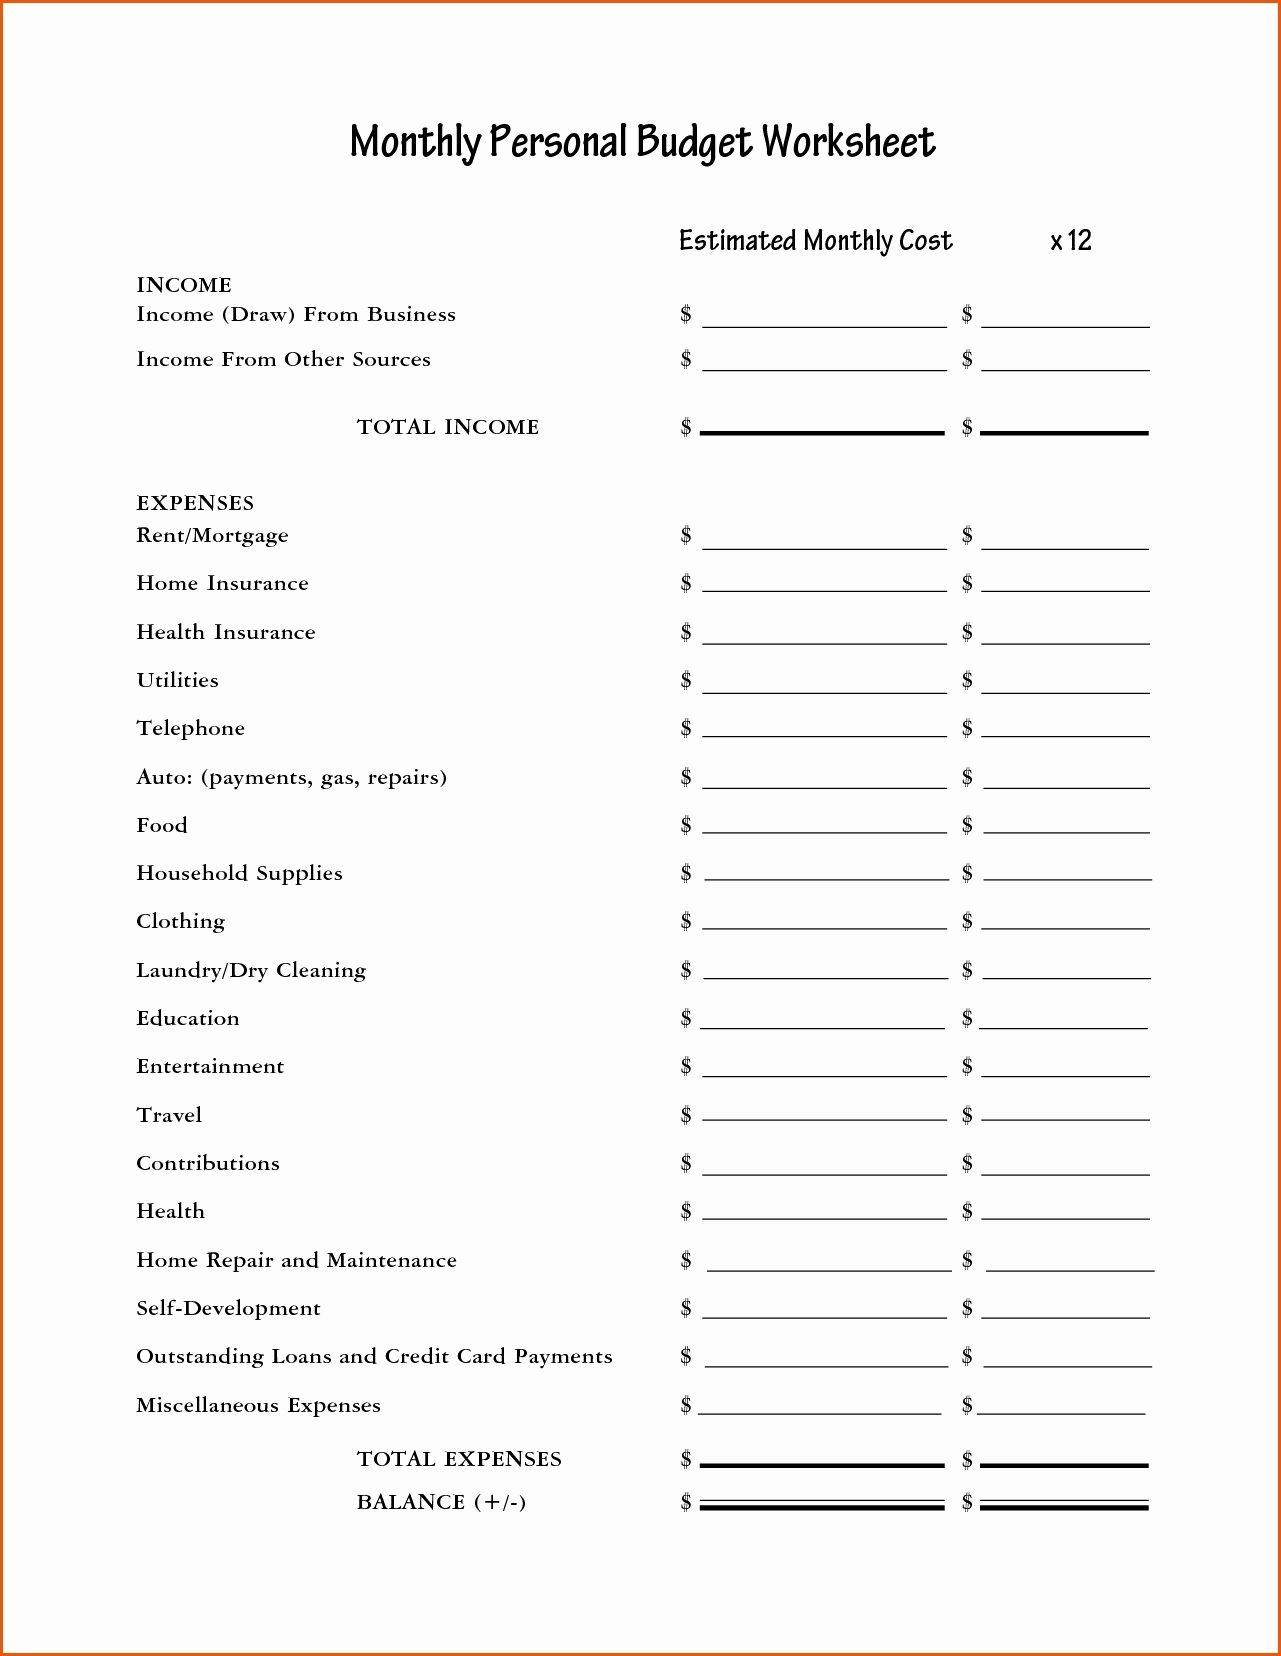 Financial Peace University Worksheets